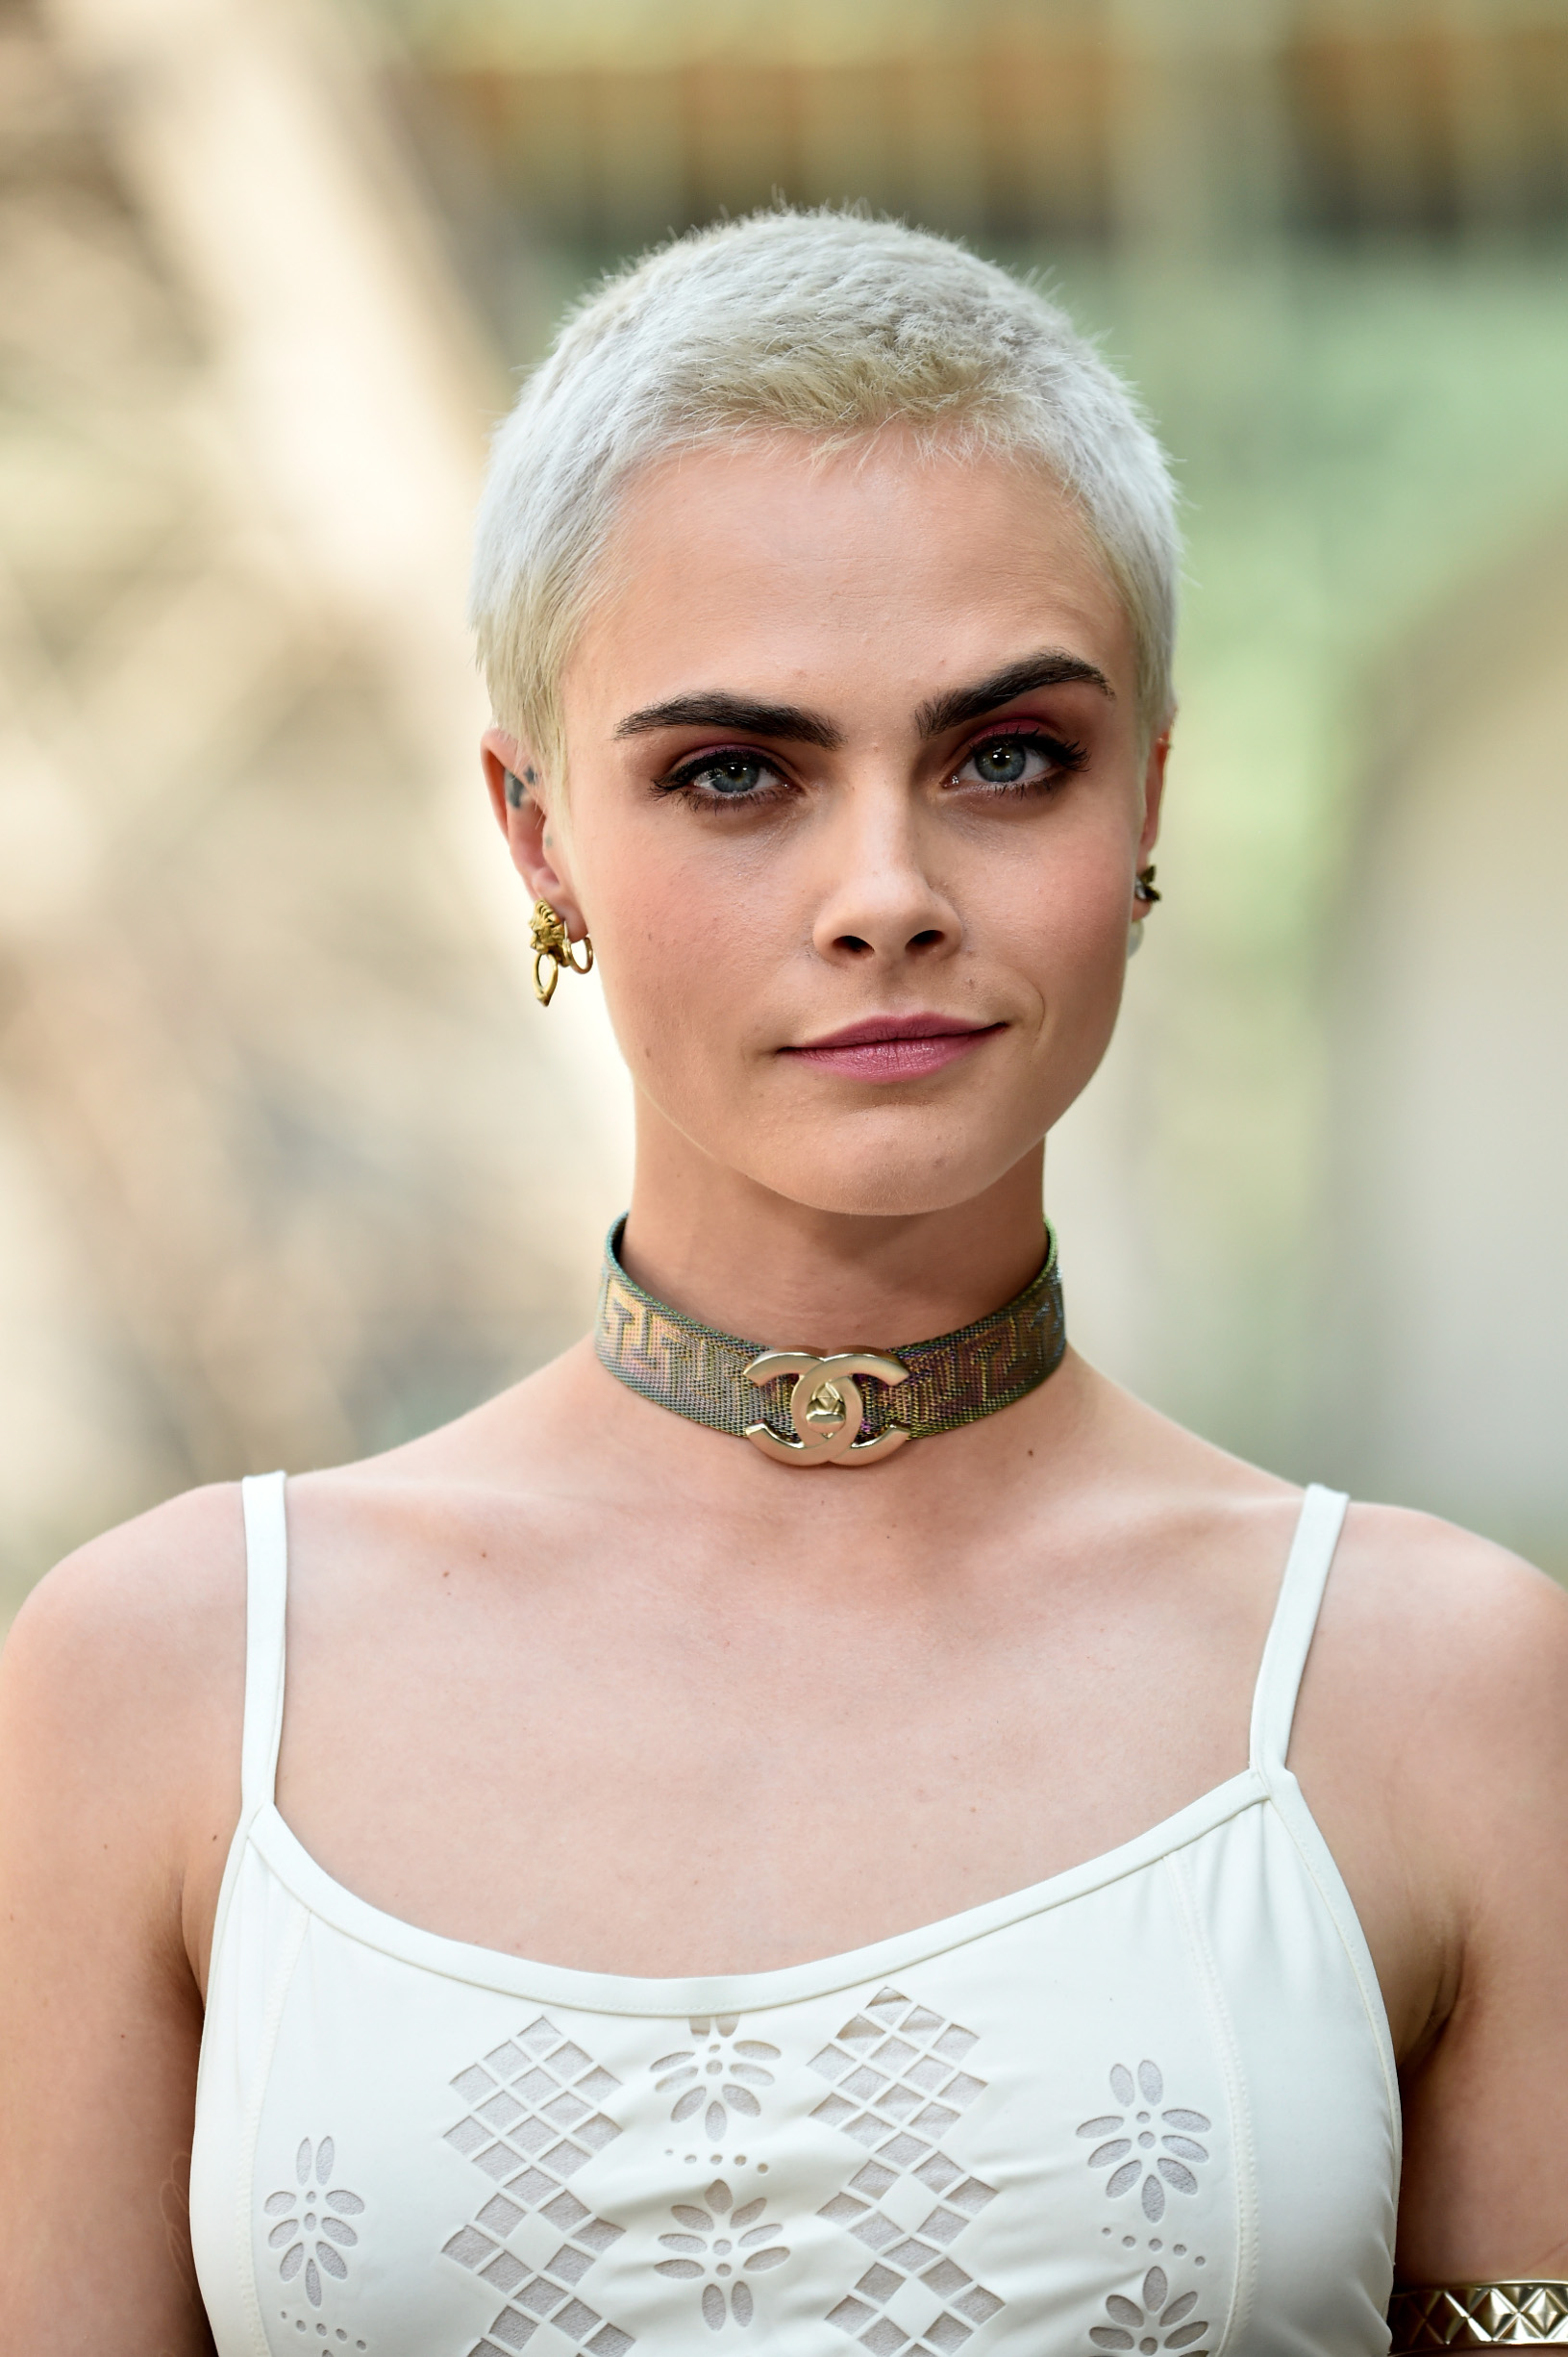 PARIS, FRANCE - JULY 04:  Cara Delevingne attends the Chanel Haute Couture Fall/Winter 2017-2018 show as part of Haute Couture Paris Fashion Week on July 4, 2017 in Paris, France.  (Photo by Pascal Le Segretain/Getty Images)